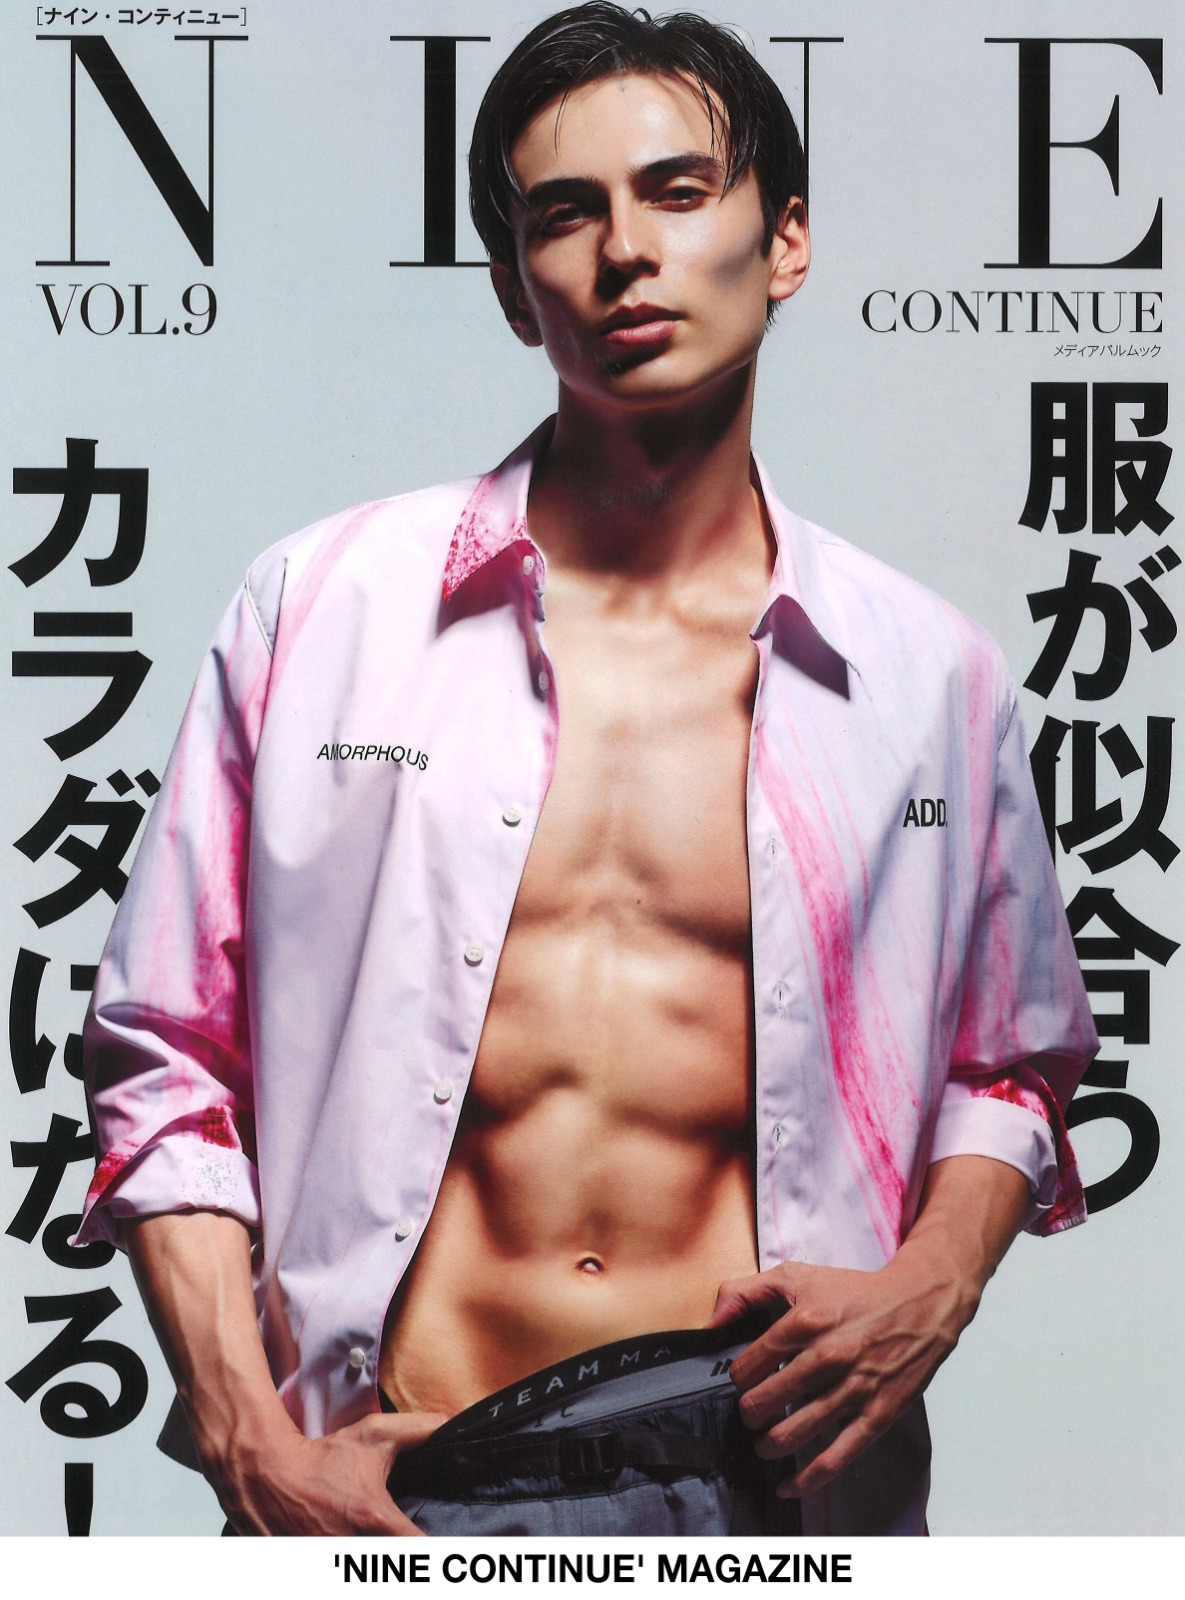 자체브랜드 - NINE CONTINUE MAGAZINE